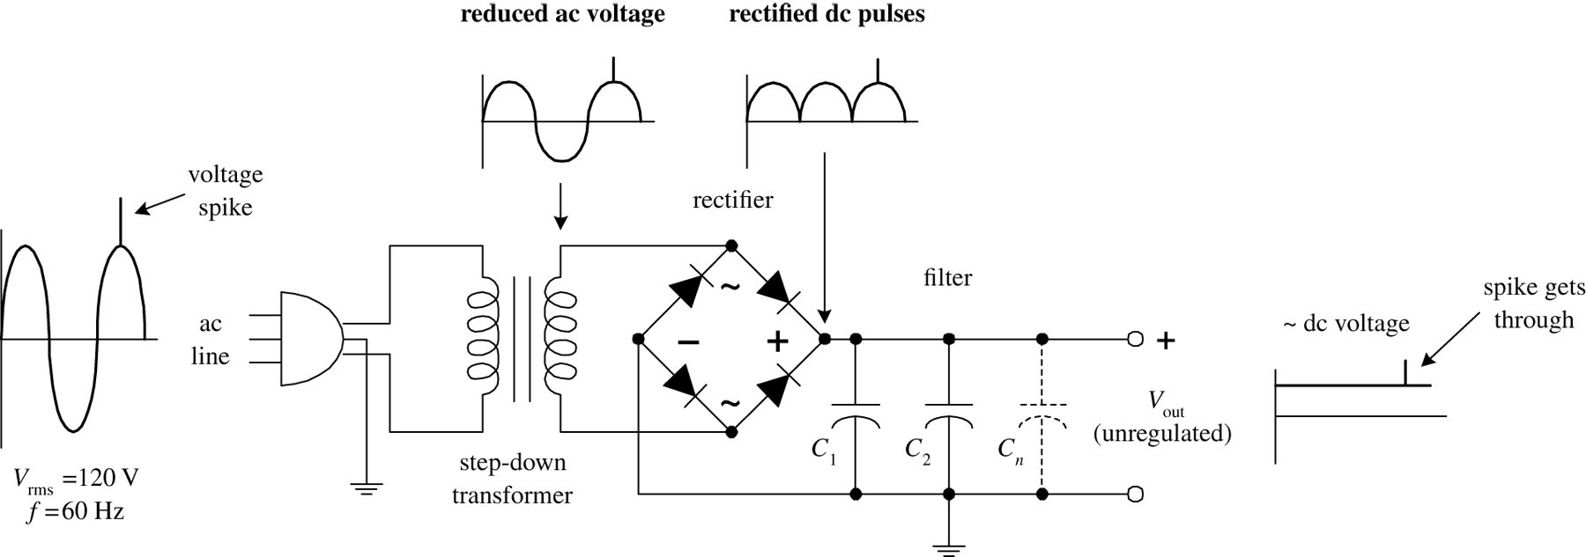 Voltage Regulators And Power Supplies Practical Electronics For Capacitor Filter Used In Full Wave Rectifier Circuit As Shown The Img